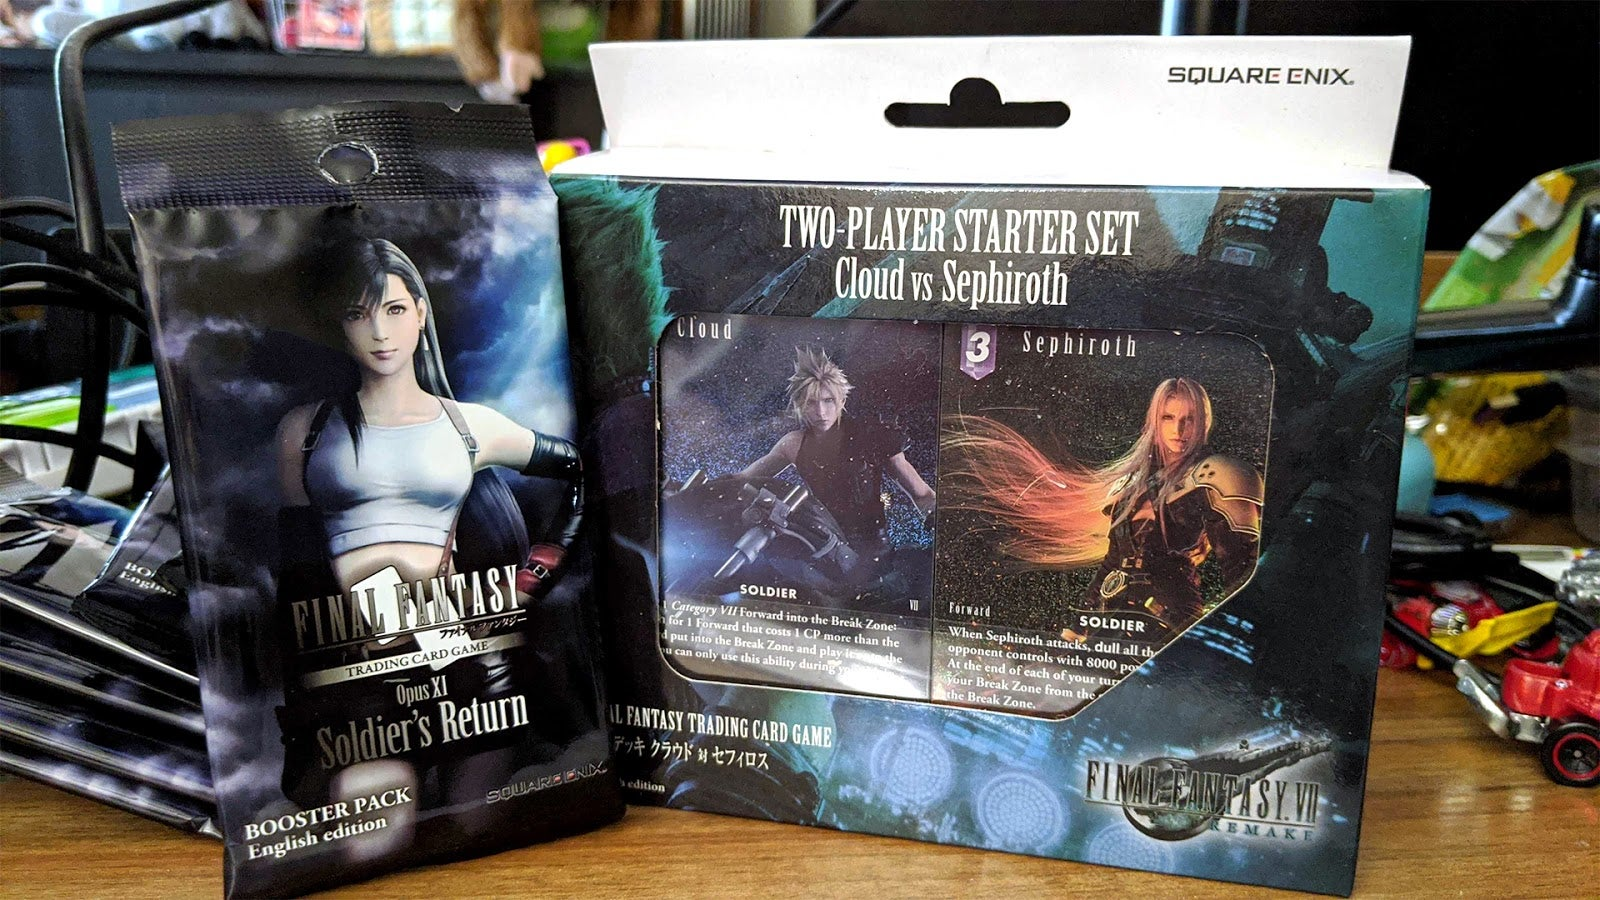 Cloud And Sephiroth Face Off Again In The Final Fantasy VII Remake Card Game Set